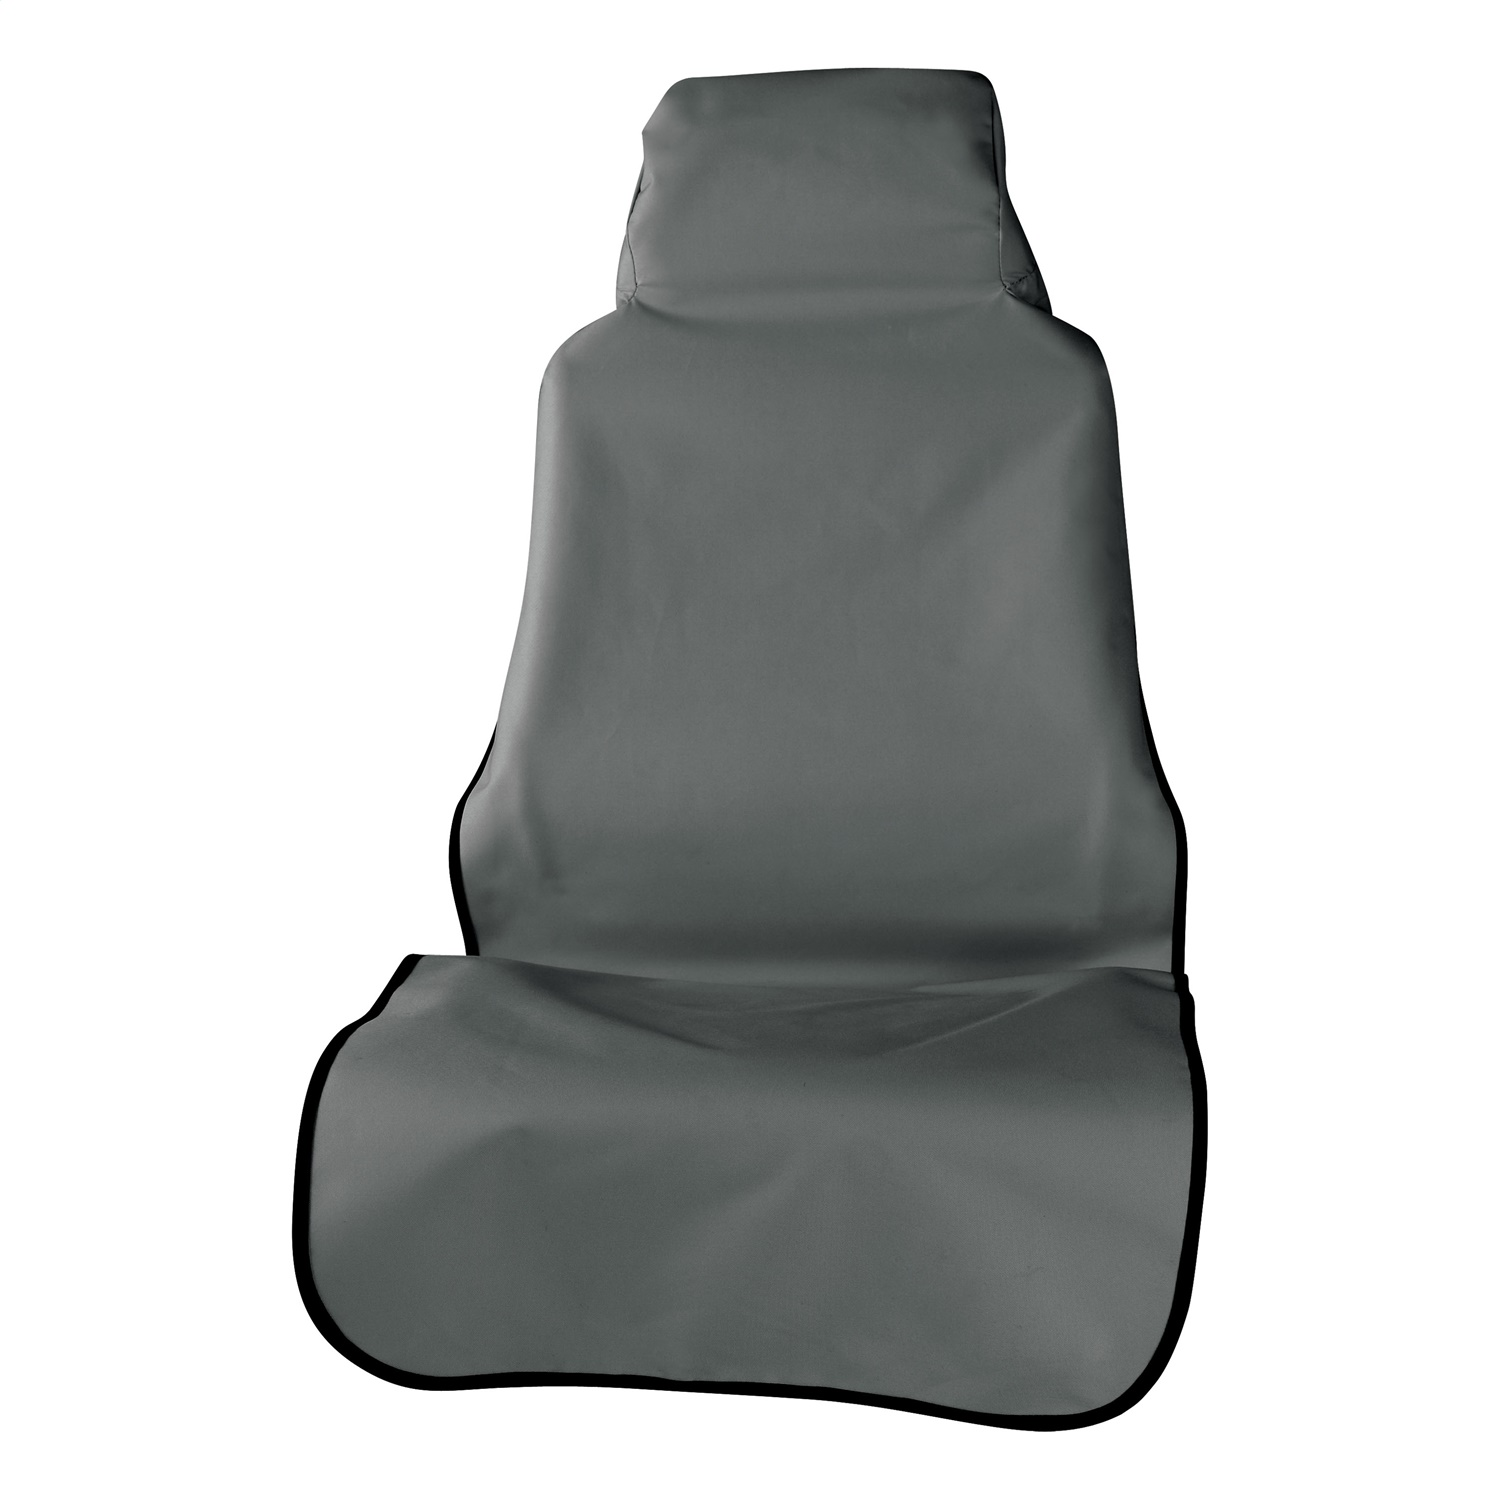 Seat Defender Seat Cover, Grey, Front, Bucket Seat